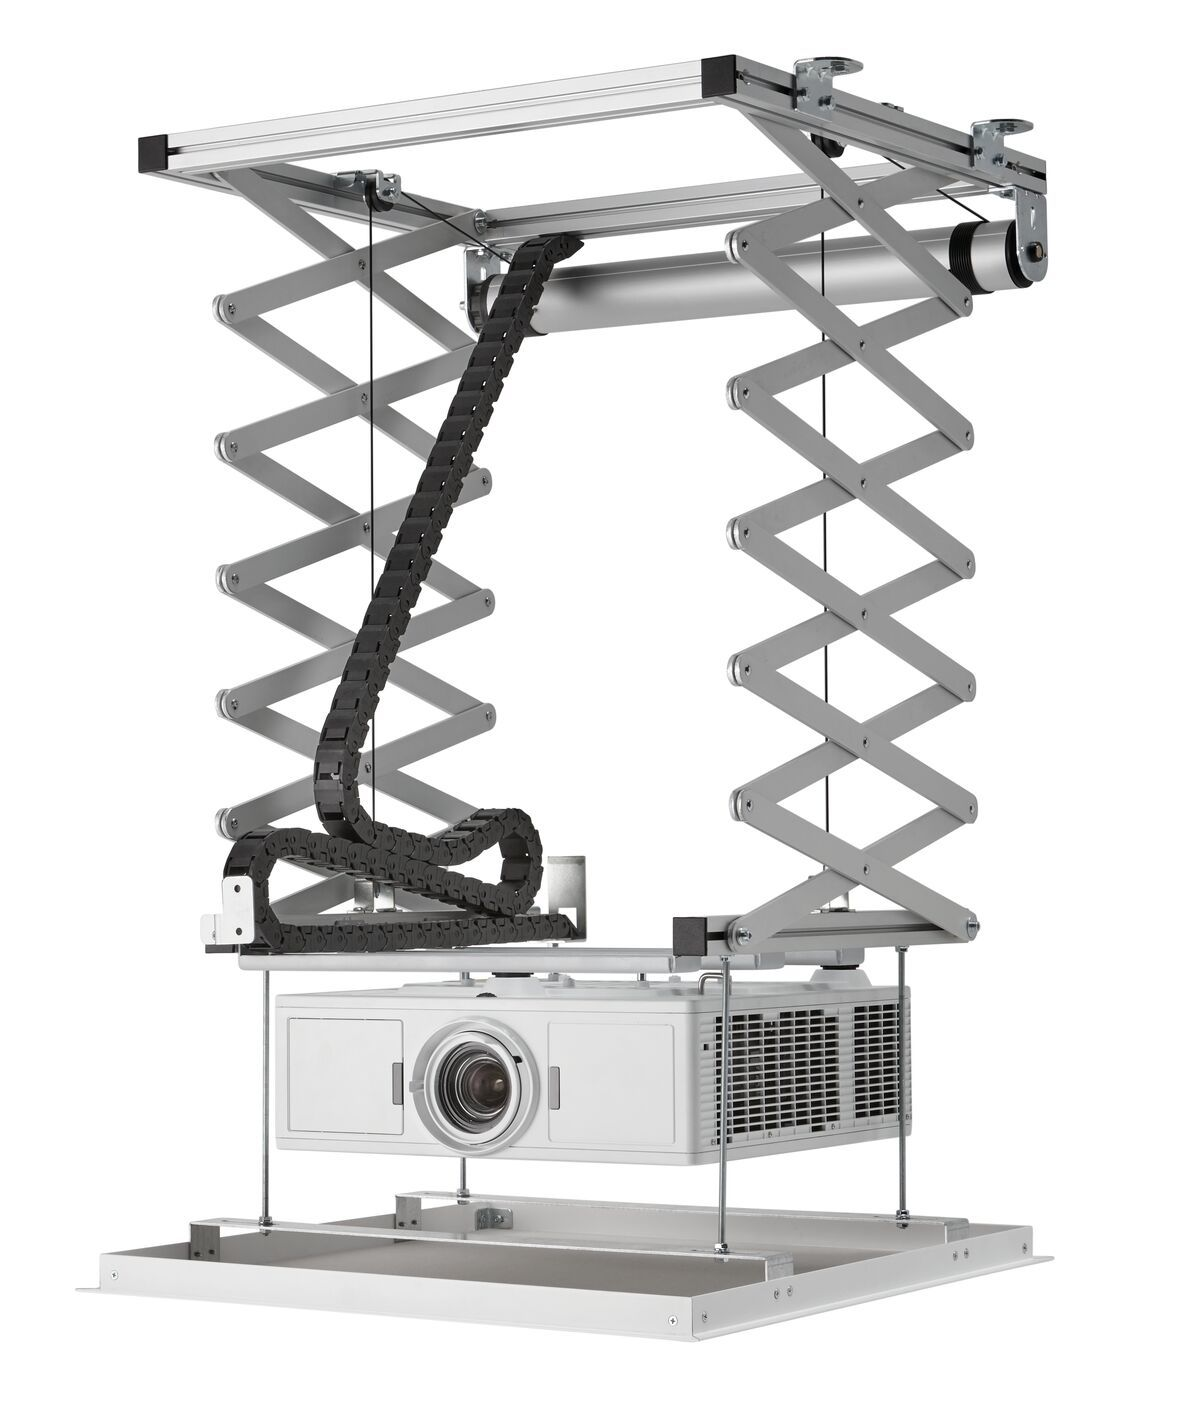 Vogel's PPL 2170-120V Projector lift system - Application